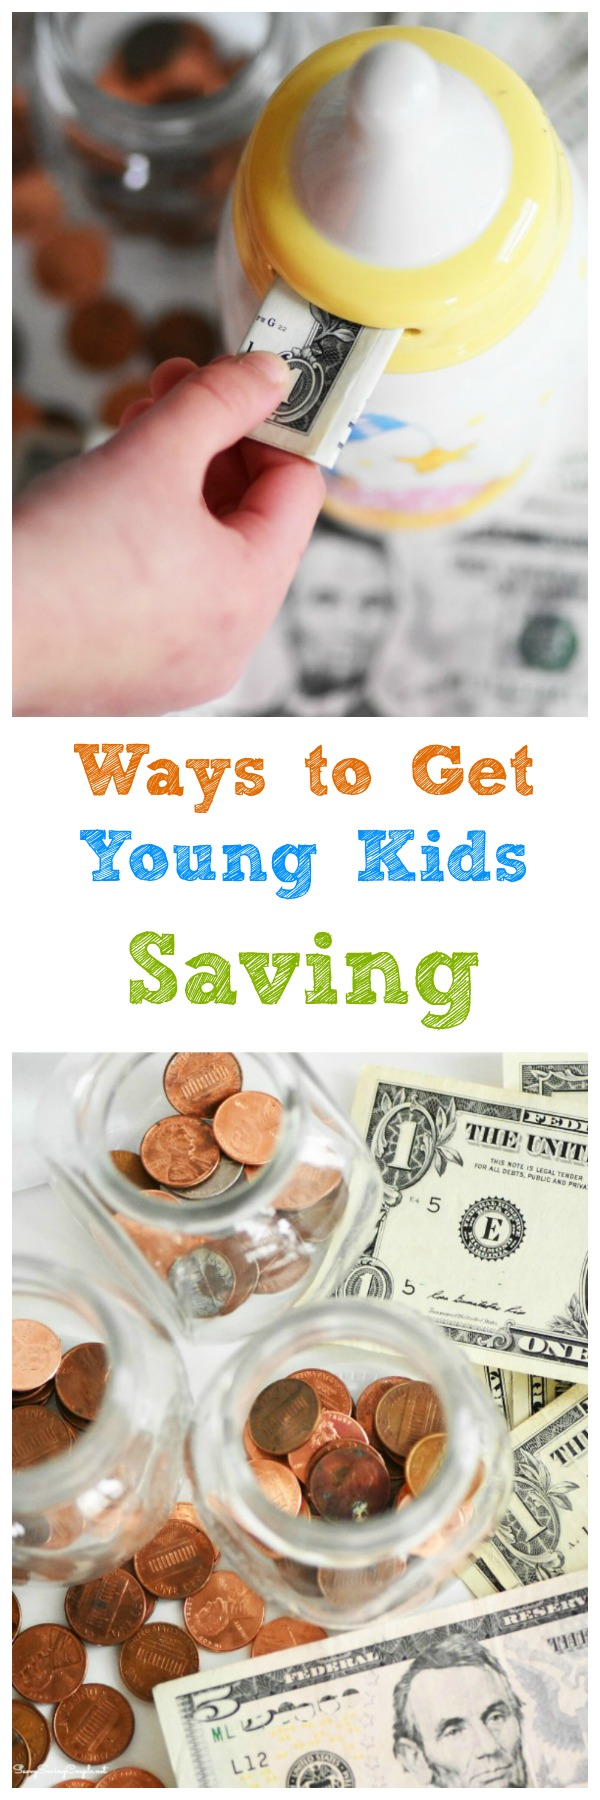 ways-to-get-young-kids-saving